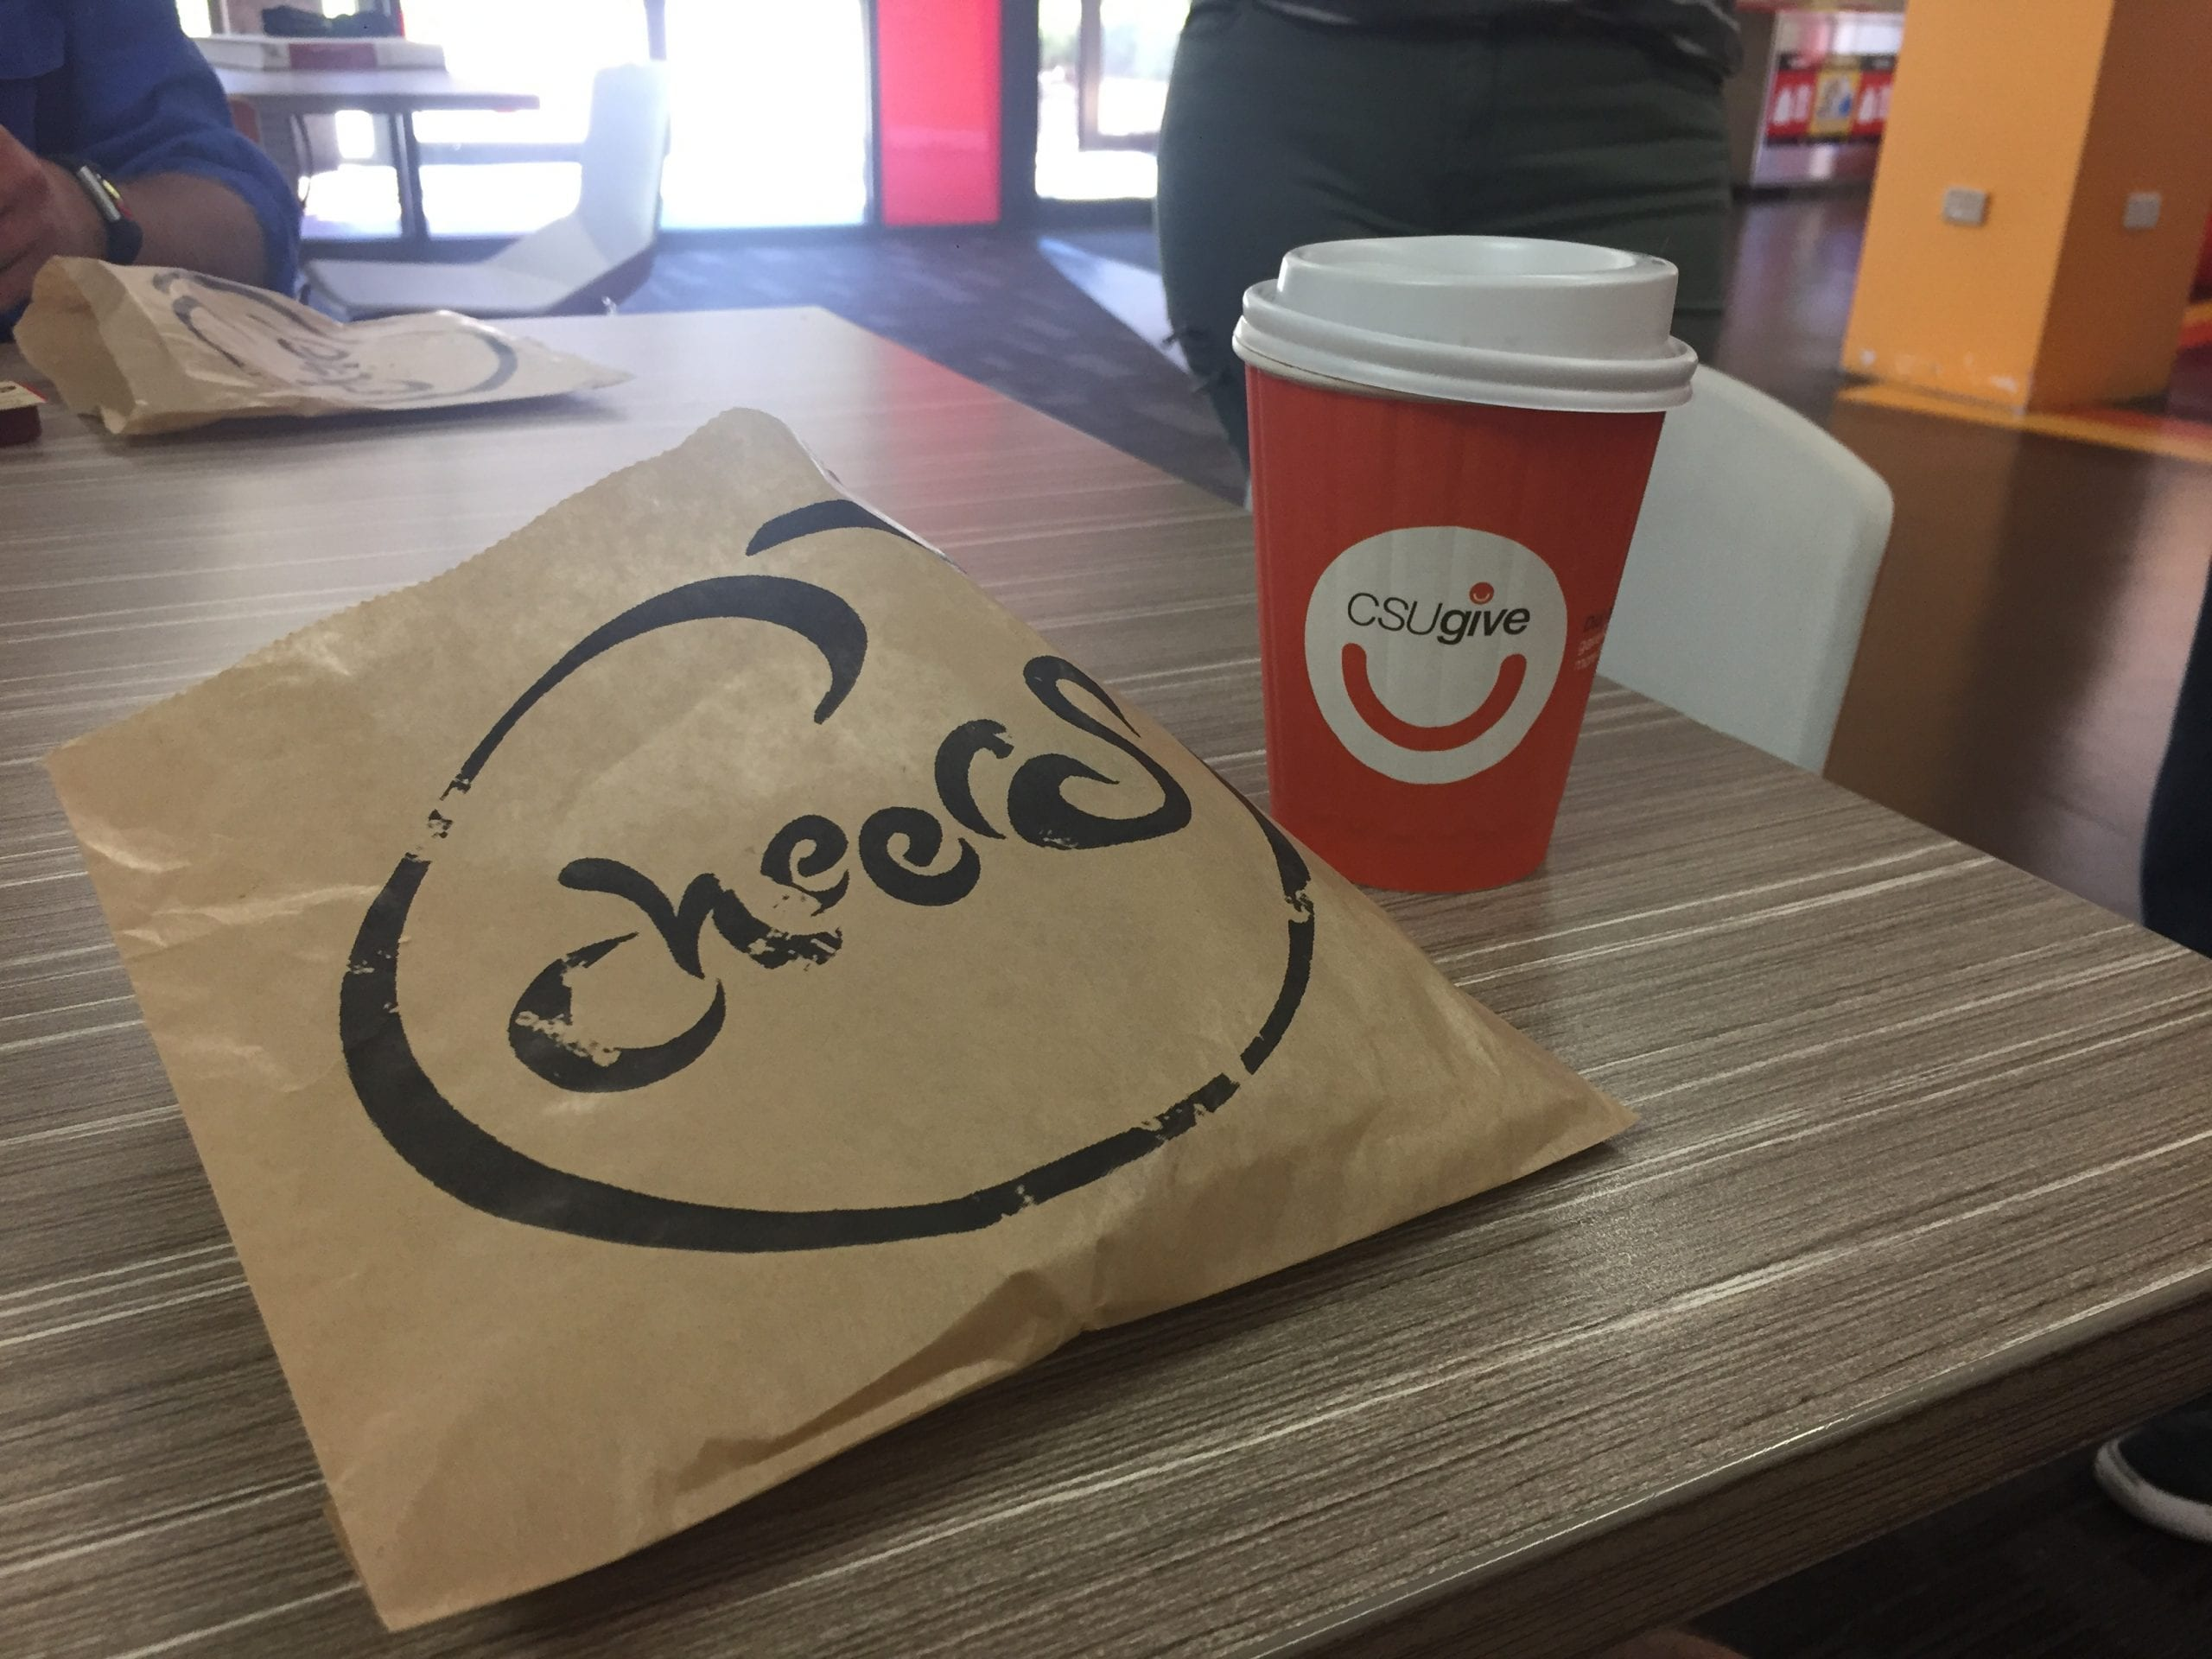 Crave Cafe at CSU in Wagga Wagga